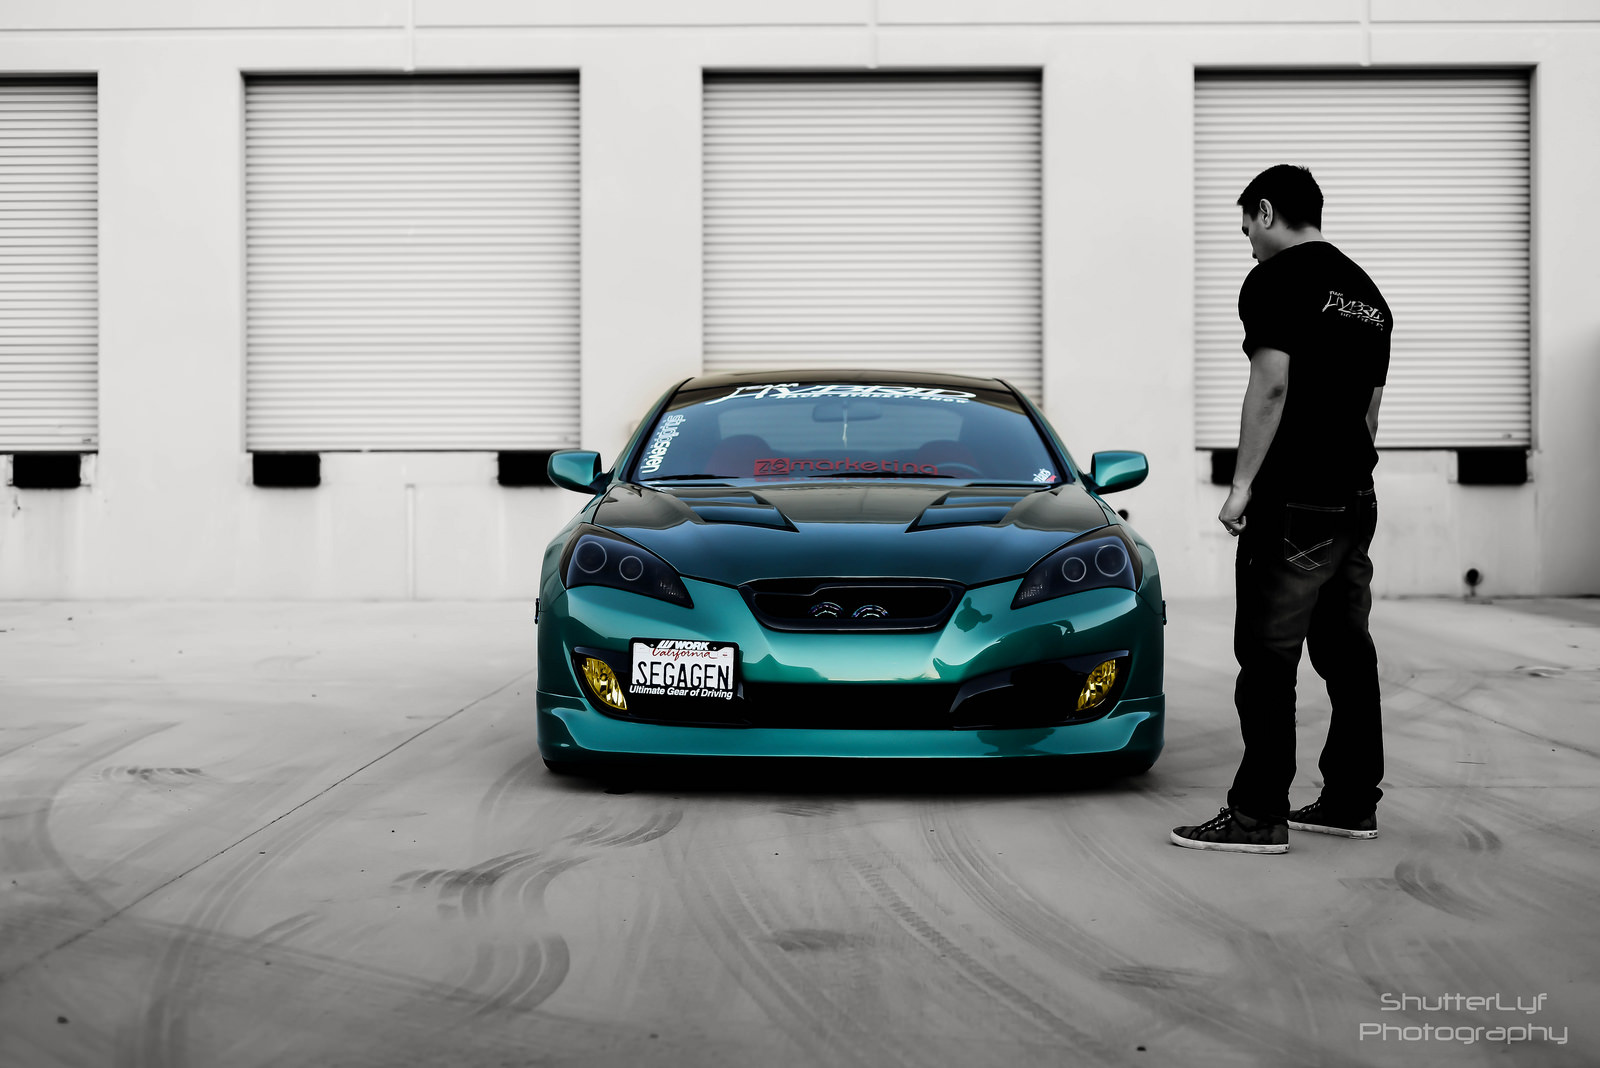 Marvelous Project Jayden Hyundai Genesis Coupe 3.8 GCTuner Project Car